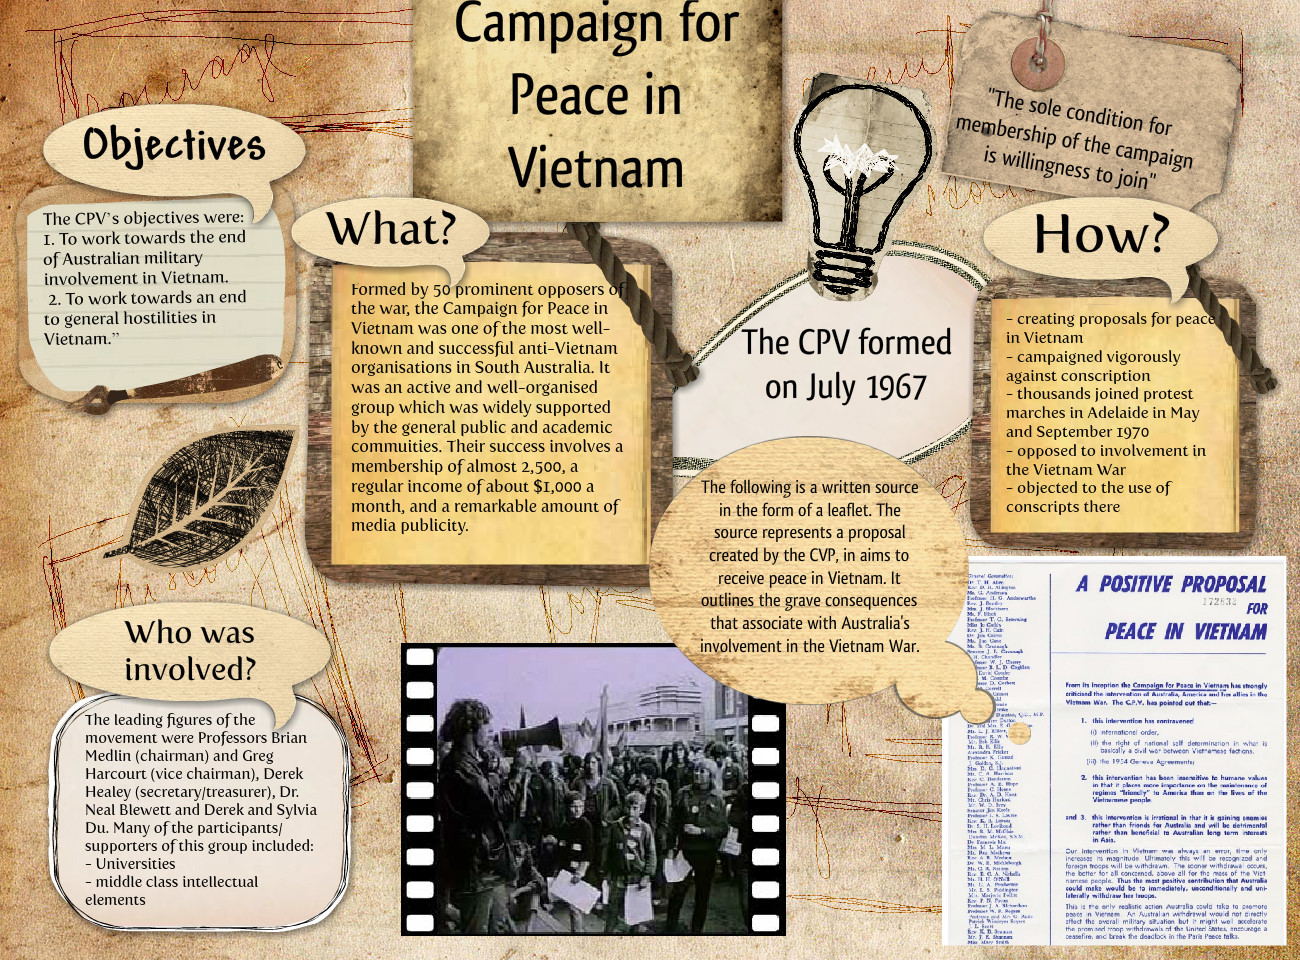 Campaign for Peace in Vietnam